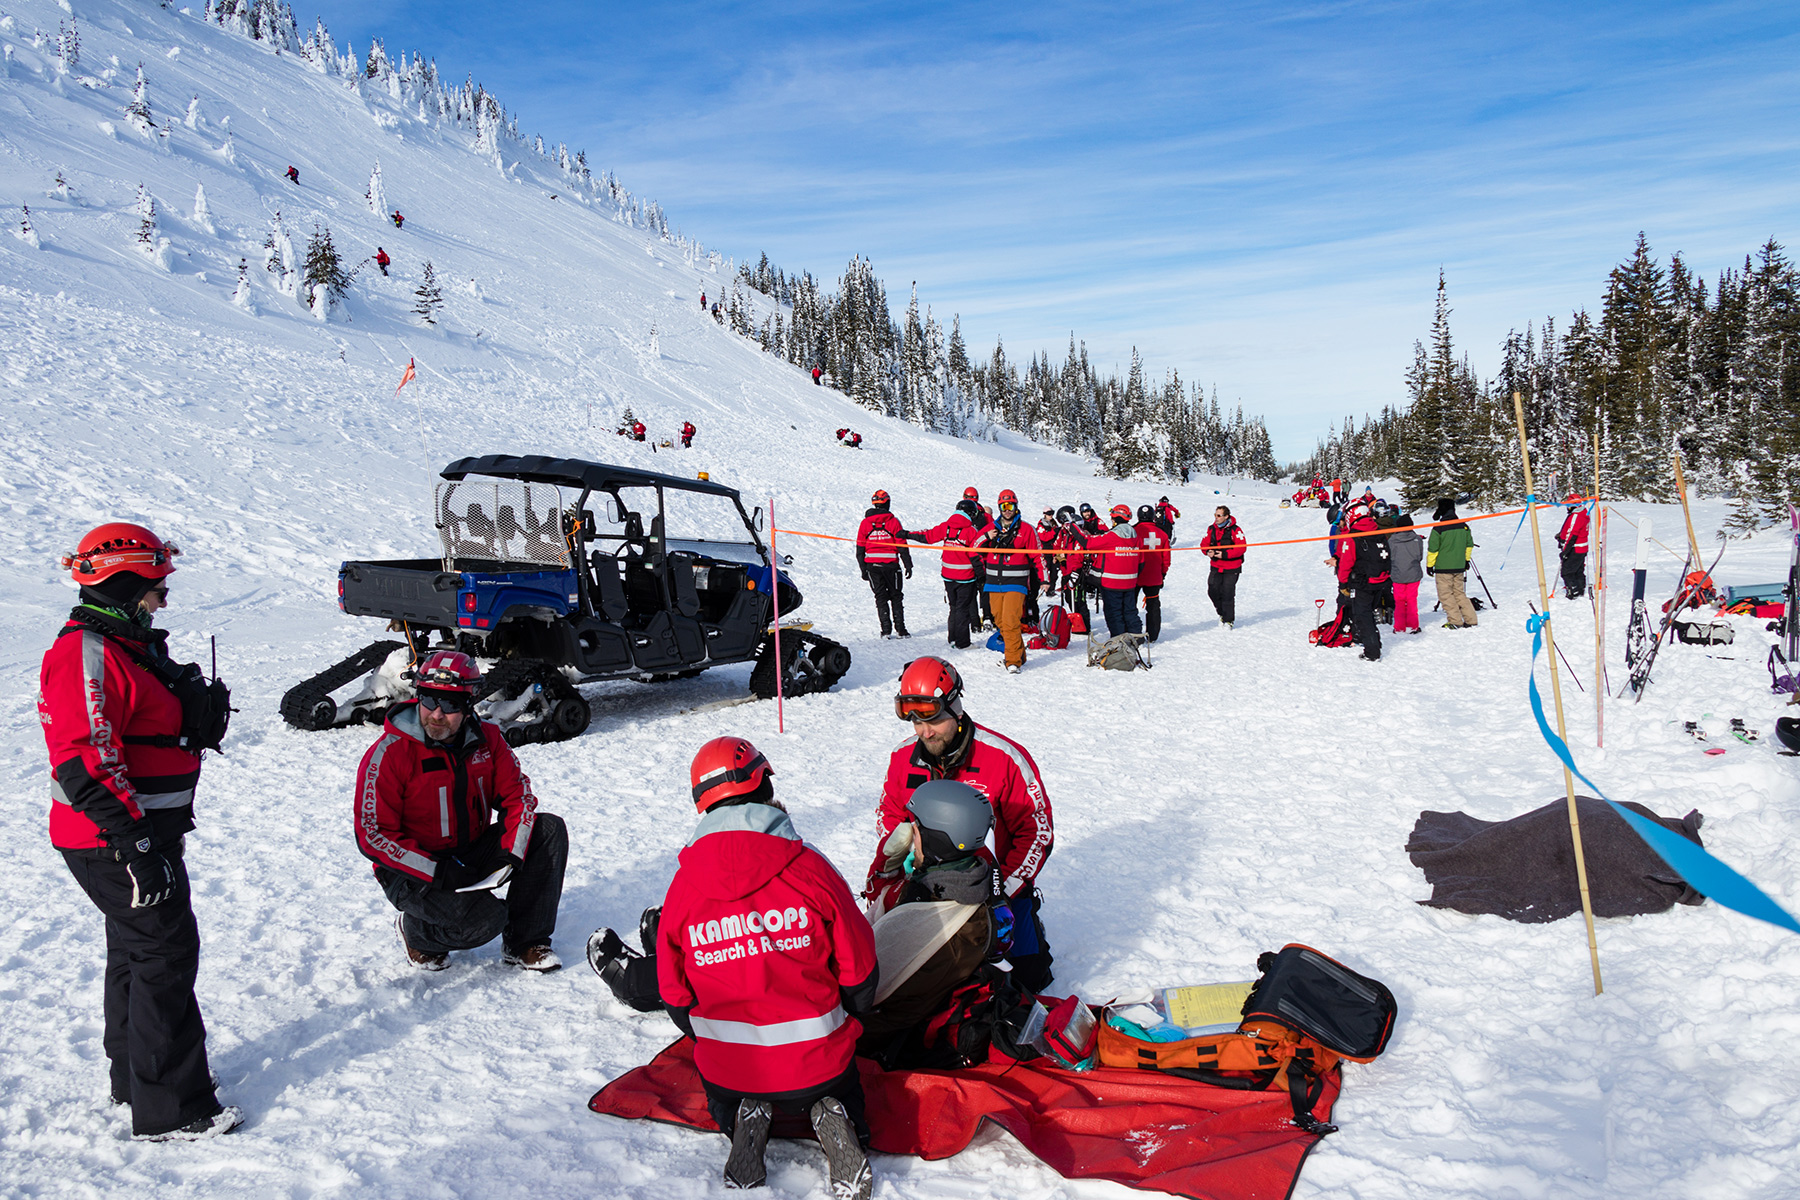 Avalanche Training Scenario at Sun Peaks Resort